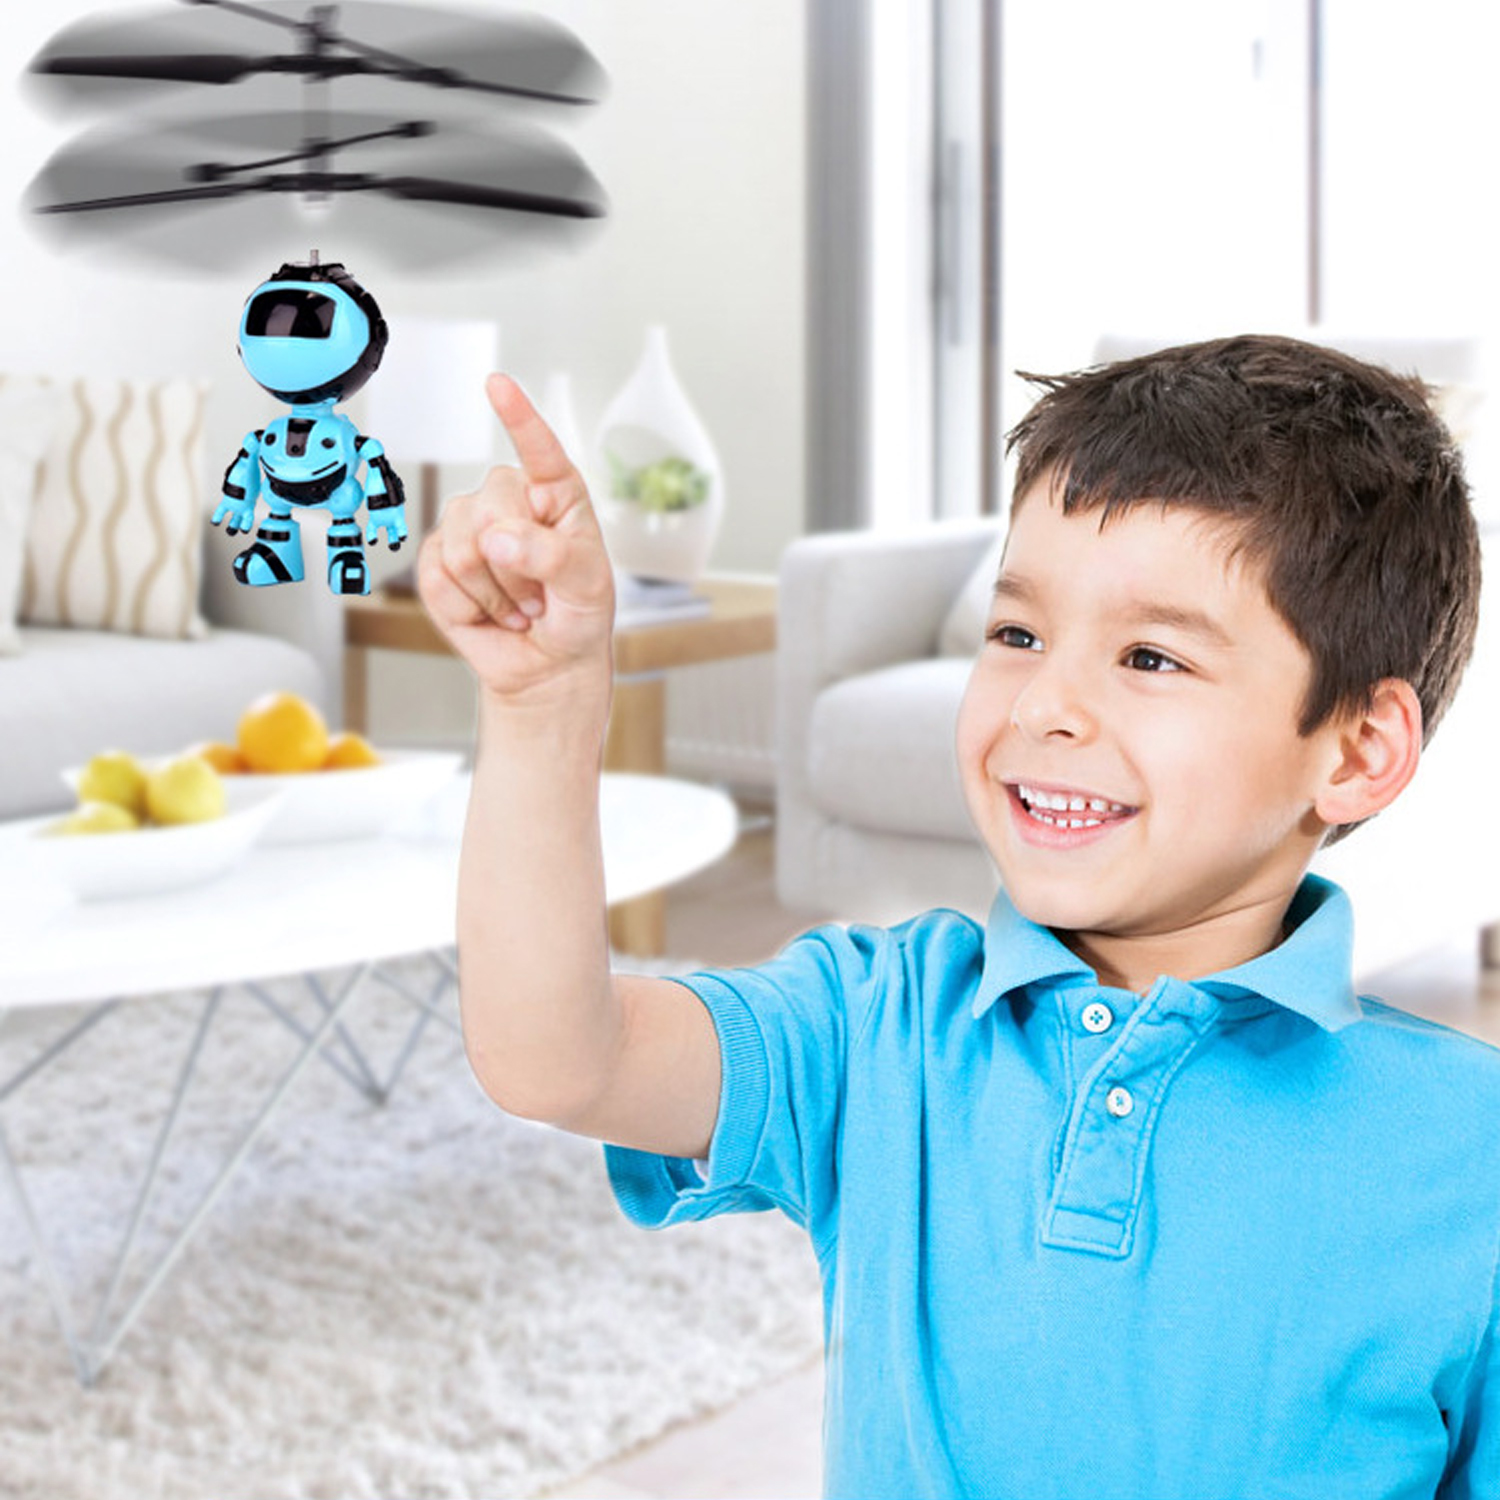 Funny Robot Style Mini Infrared Induction Flying Ball Aircraft Helicopter Toy with LED Light for Boys Girls Teenagers Gifts